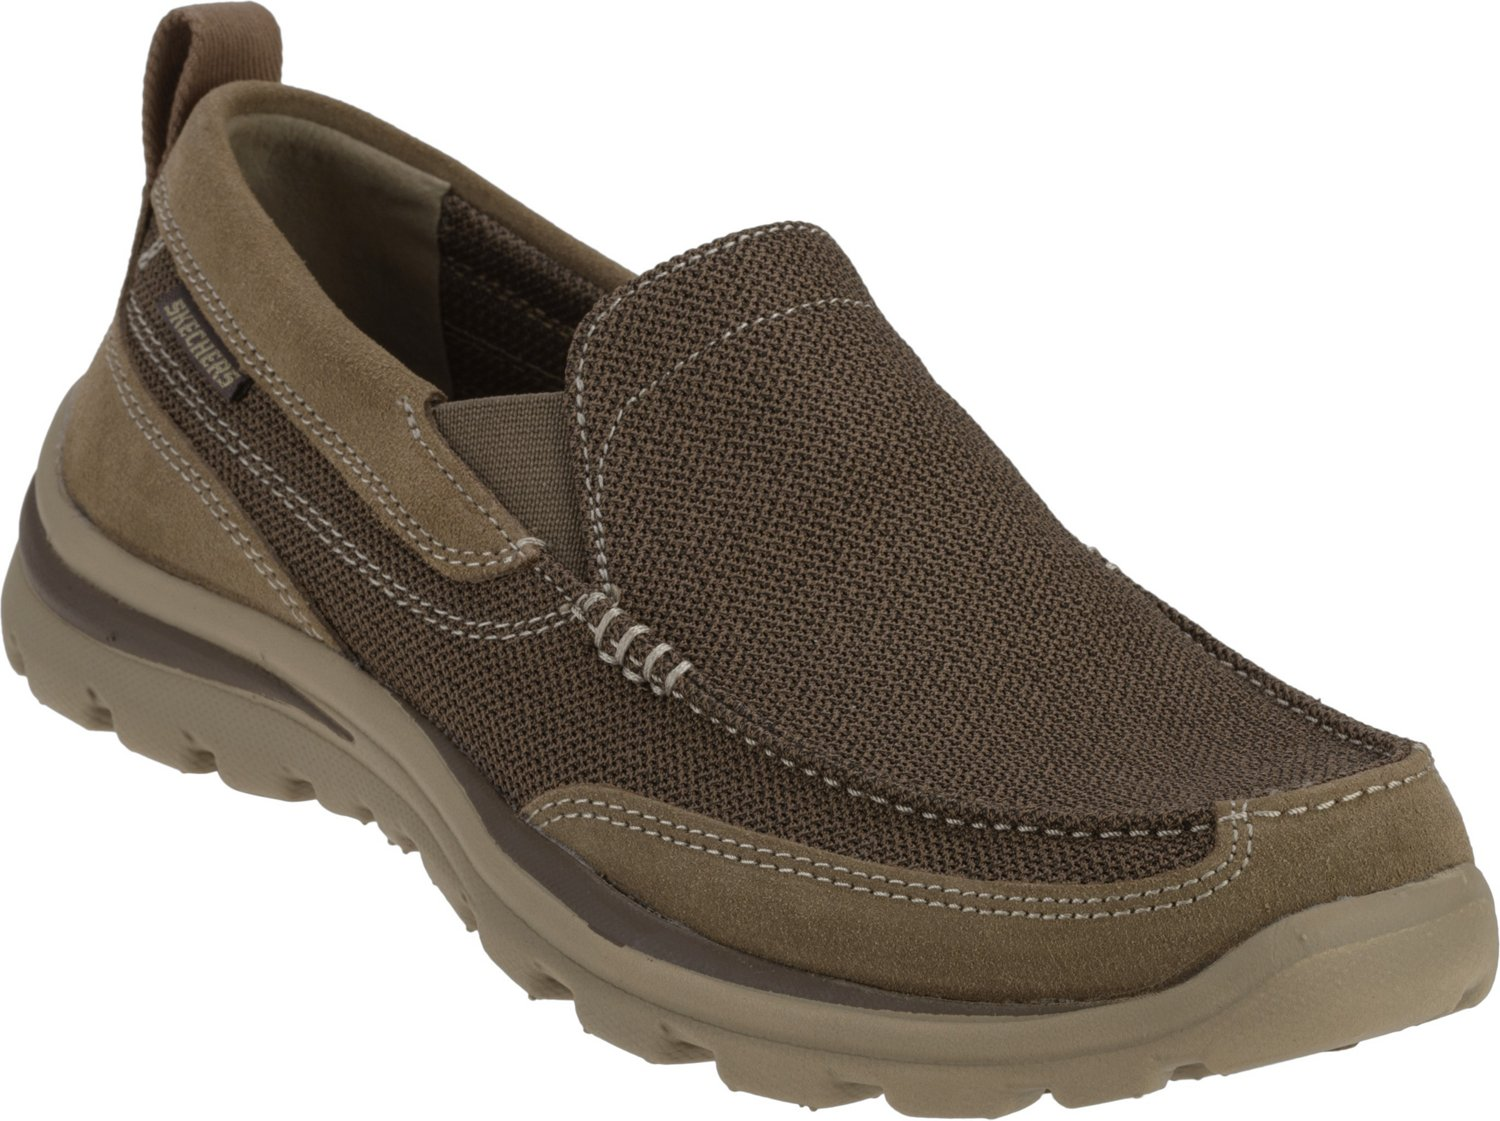 a29de7fda15a Display product reviews for SKECHERS Men s Relaxed Fit Superior Milford  Shoes This product is currently selected